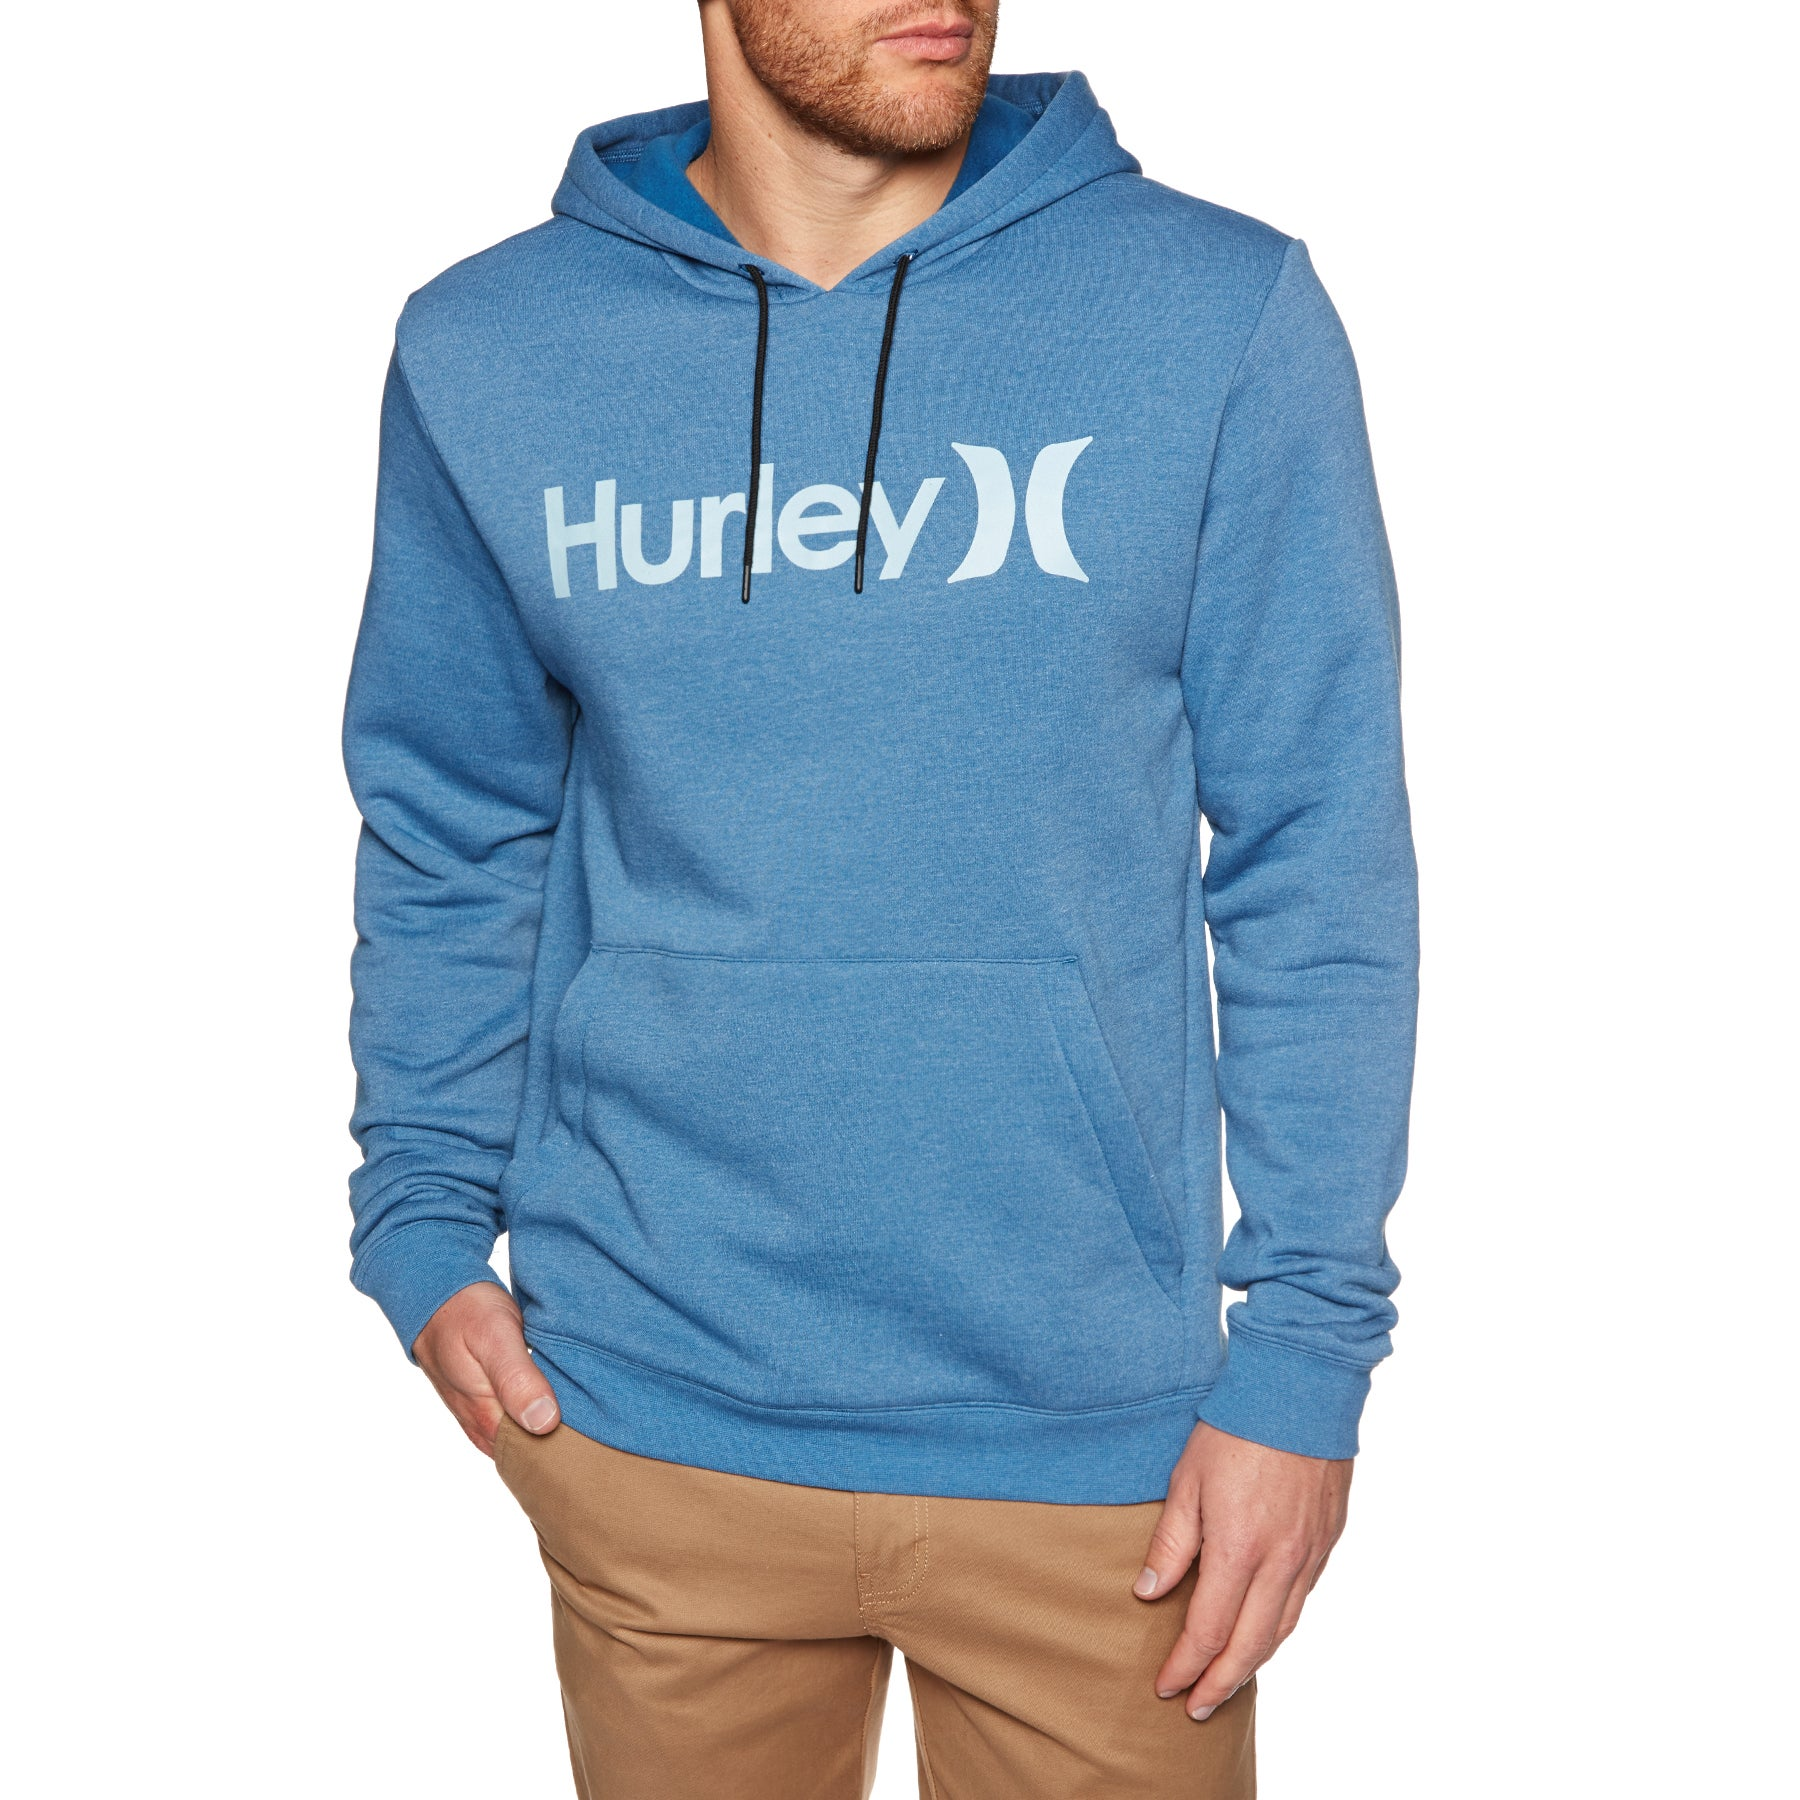 Hurley Surf Check One & Only Pullover Hoody - Blue Force Htr